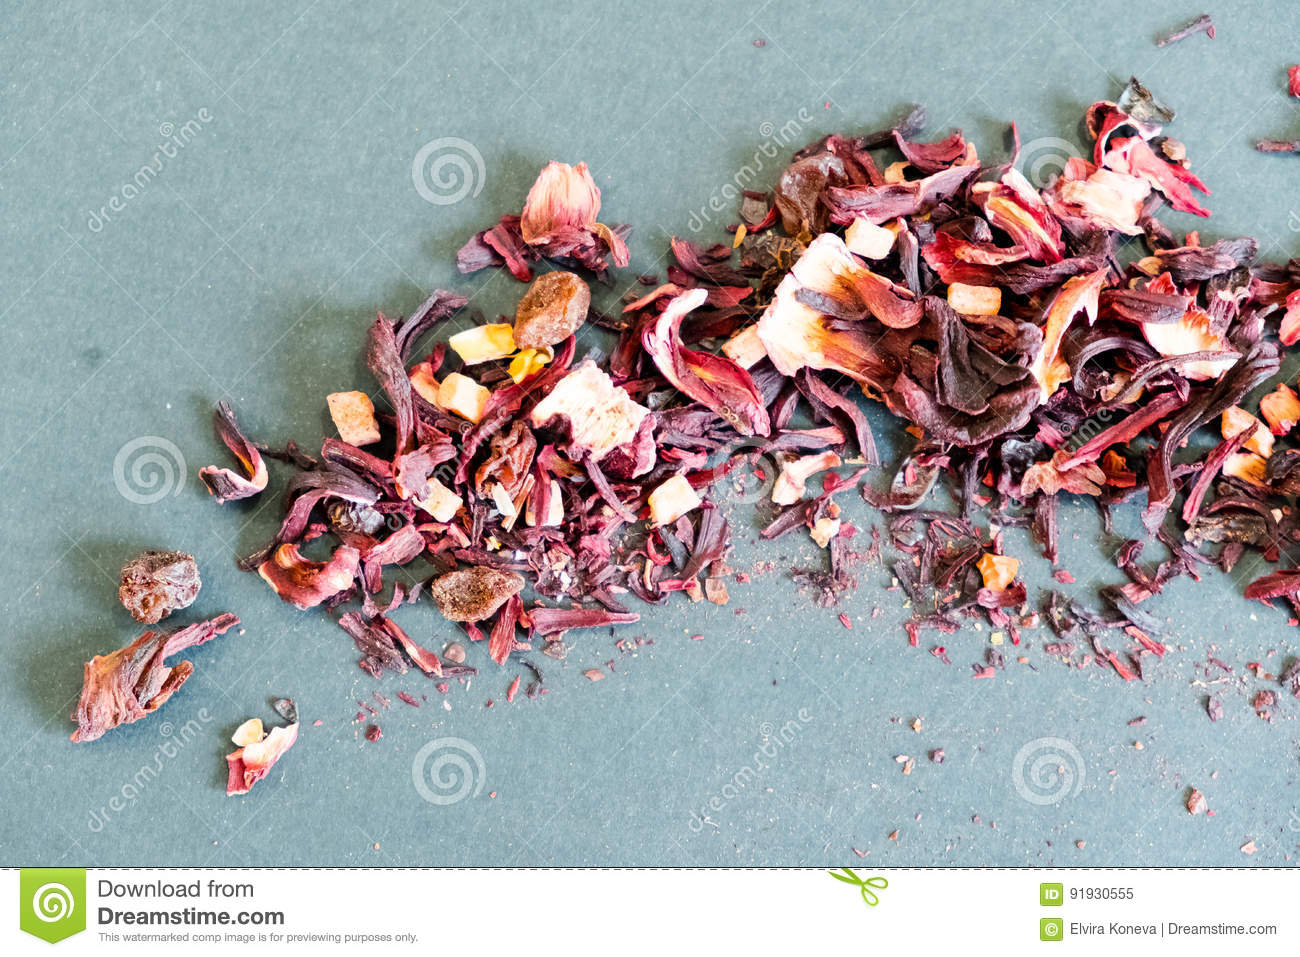 Hibiscus tea petals and dry tea custard copy space the composition hibiscus tea petals and dry tea custard copy space the composition of the heap of tea roses and dried hibiscus flower karkade background izmirmasajfo Images